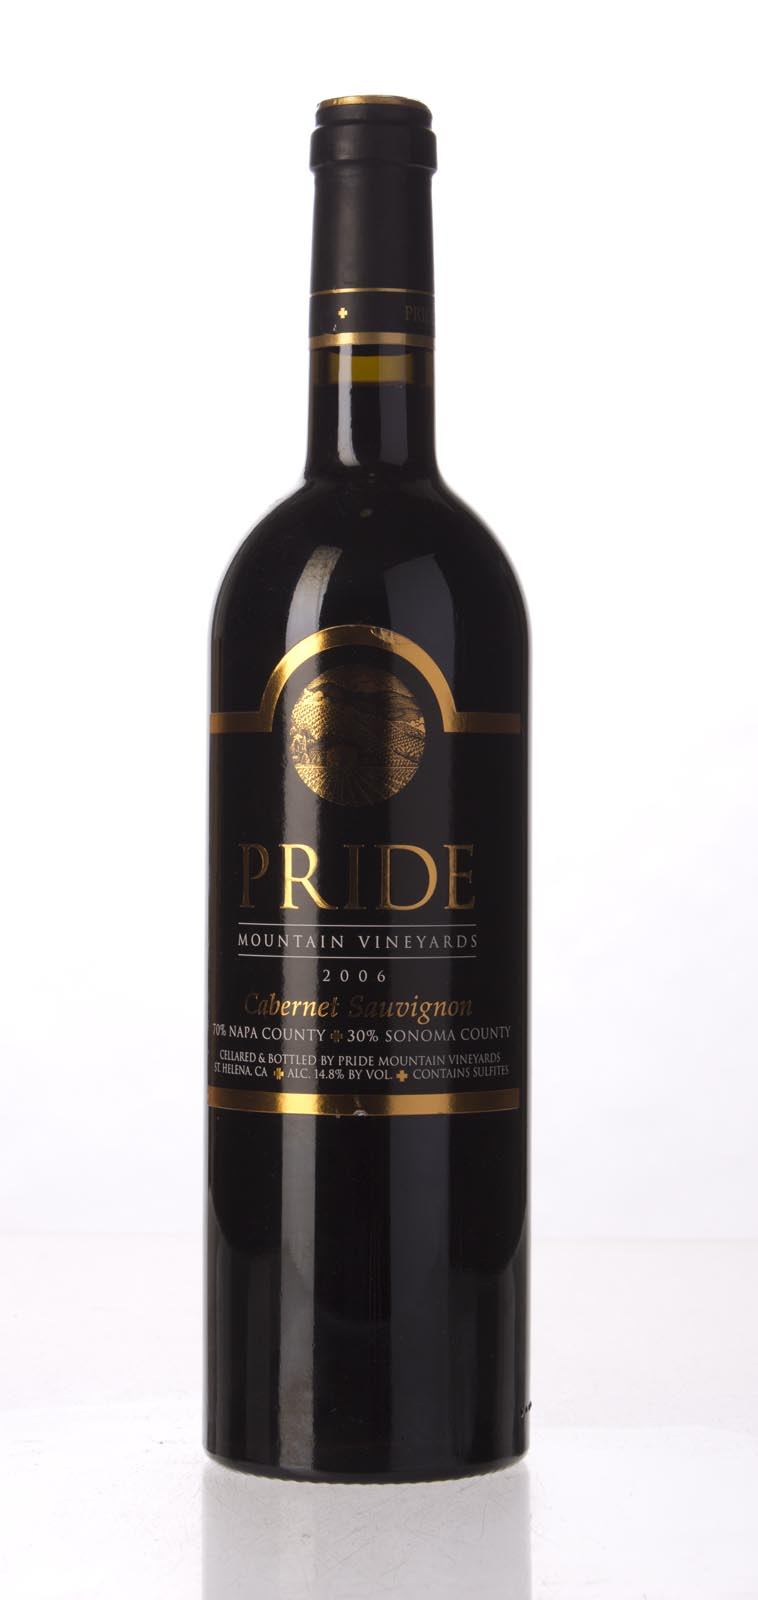 Pride Mountain Vineyards Cabernet Sauvignon 2006,  (WA90) from The BPW - Merchants of rare and fine wines.